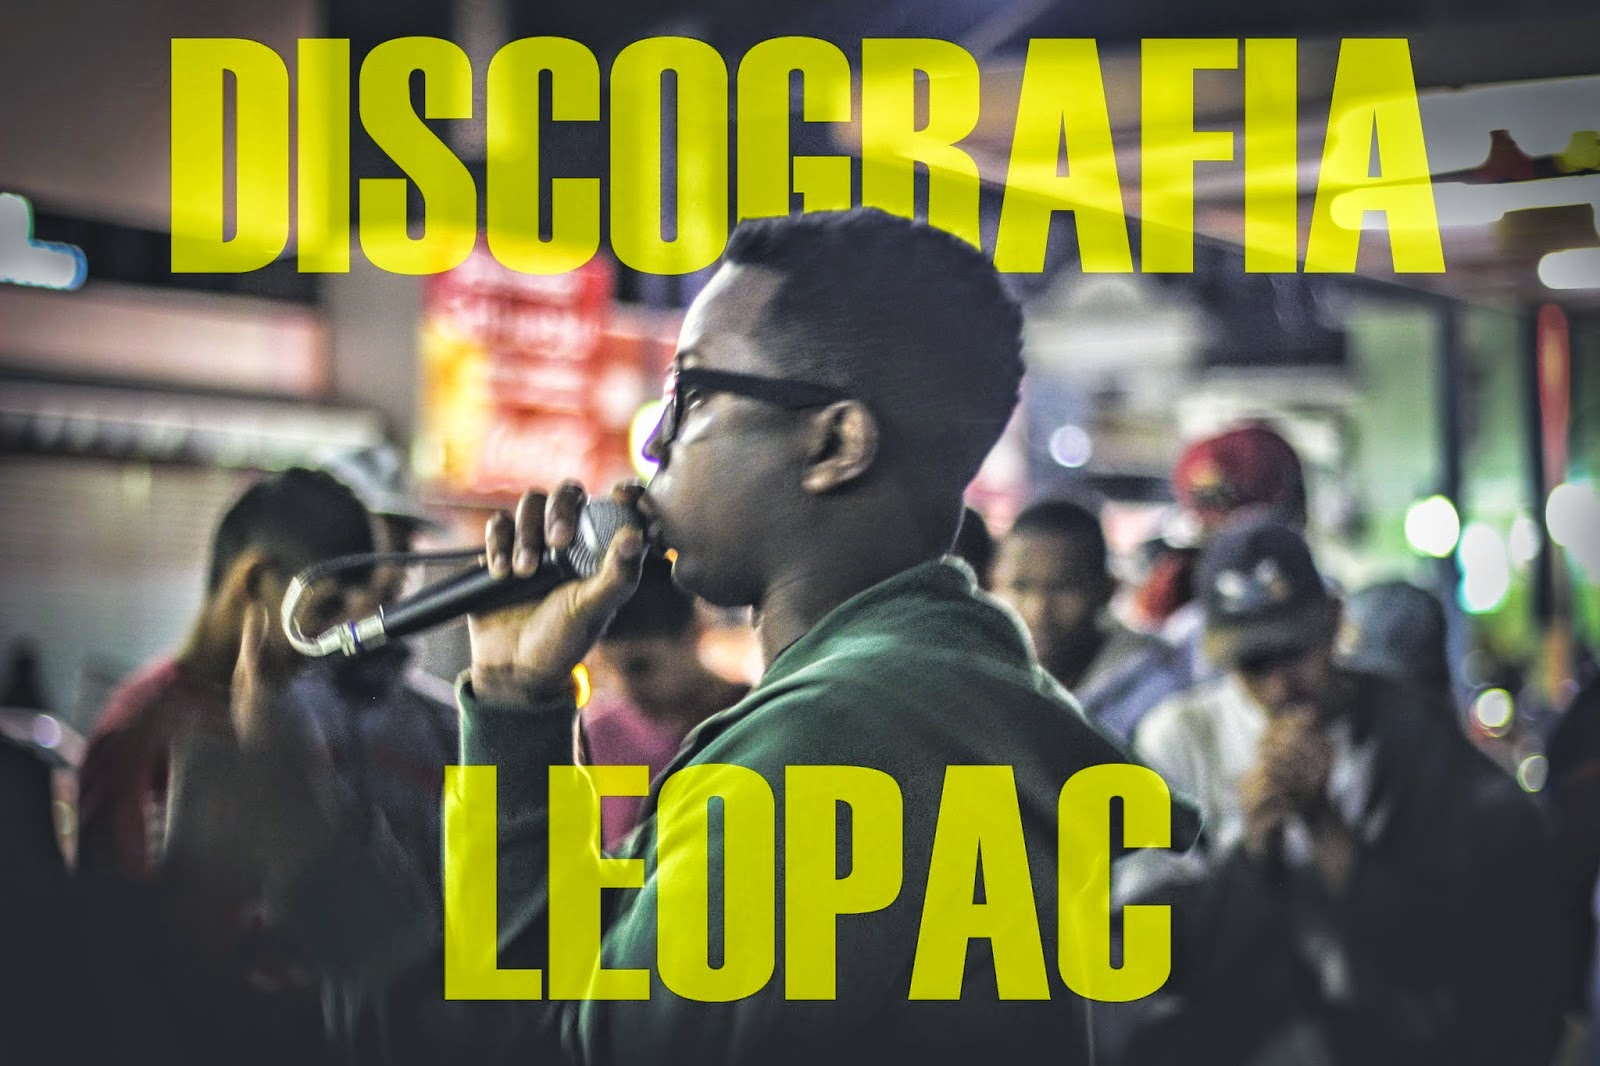 Discografia do Leopac disponivel pra  download